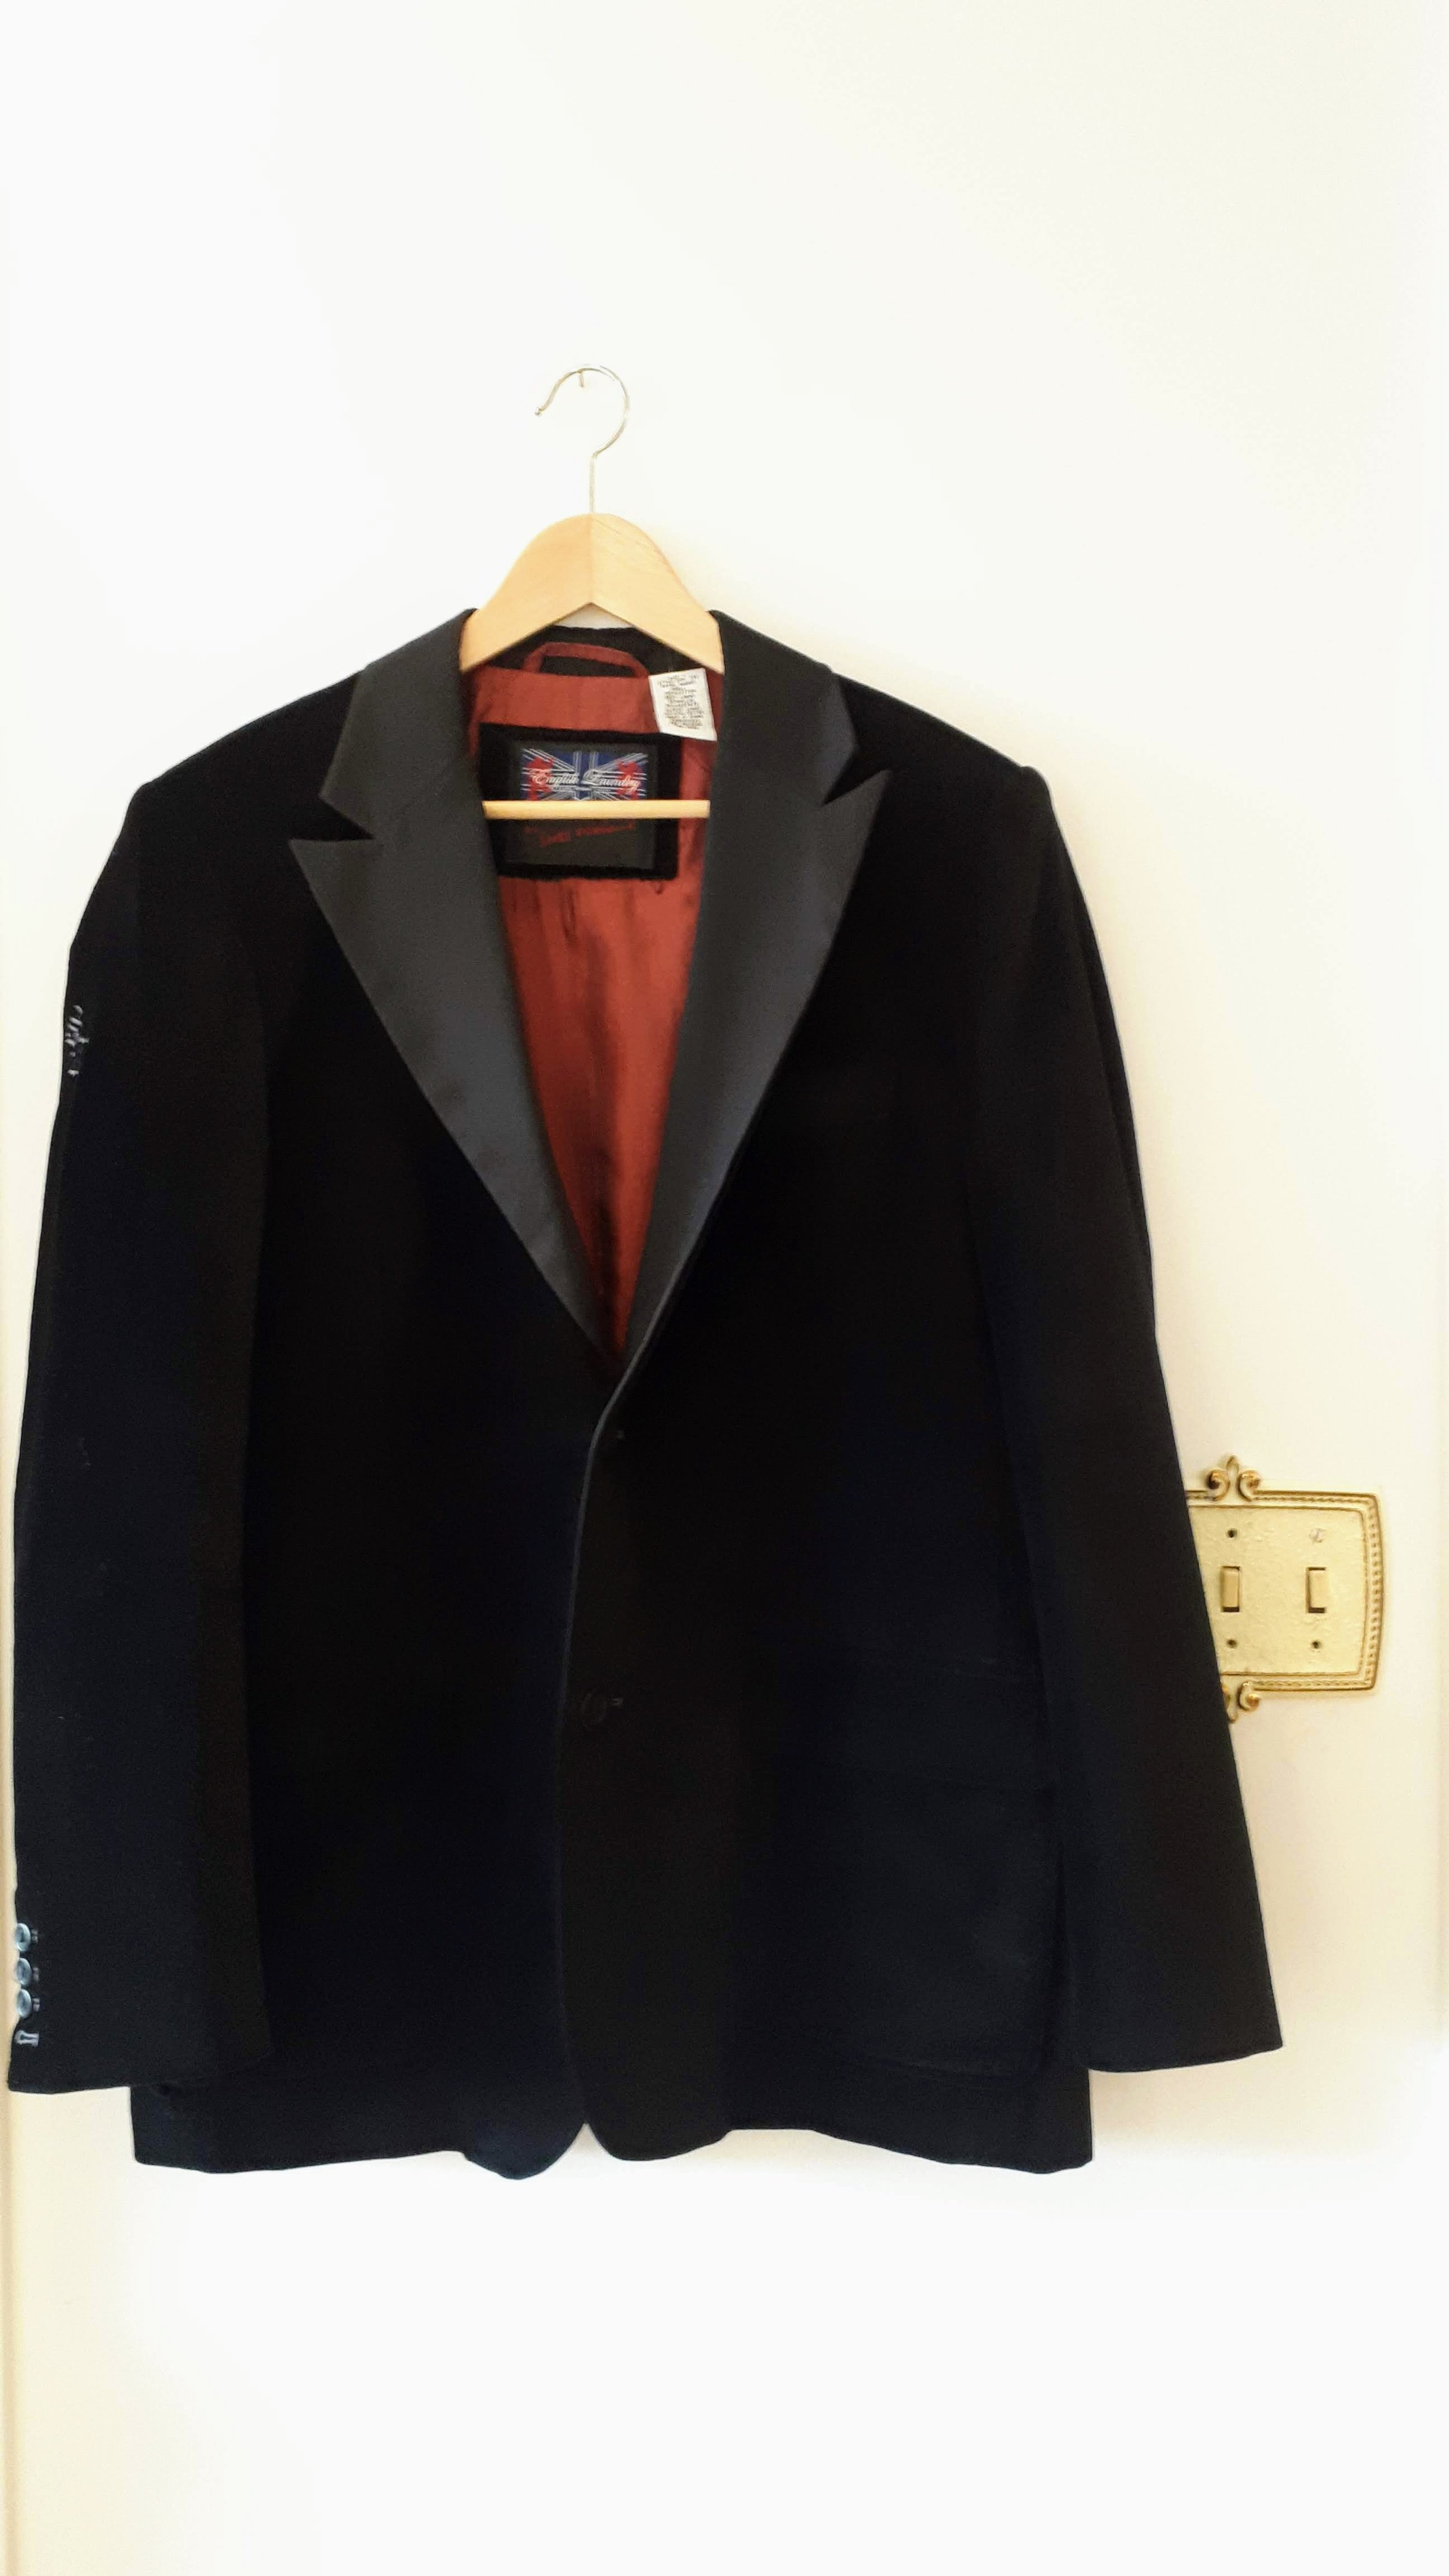 English Laundry mens jacket; Size L, $62